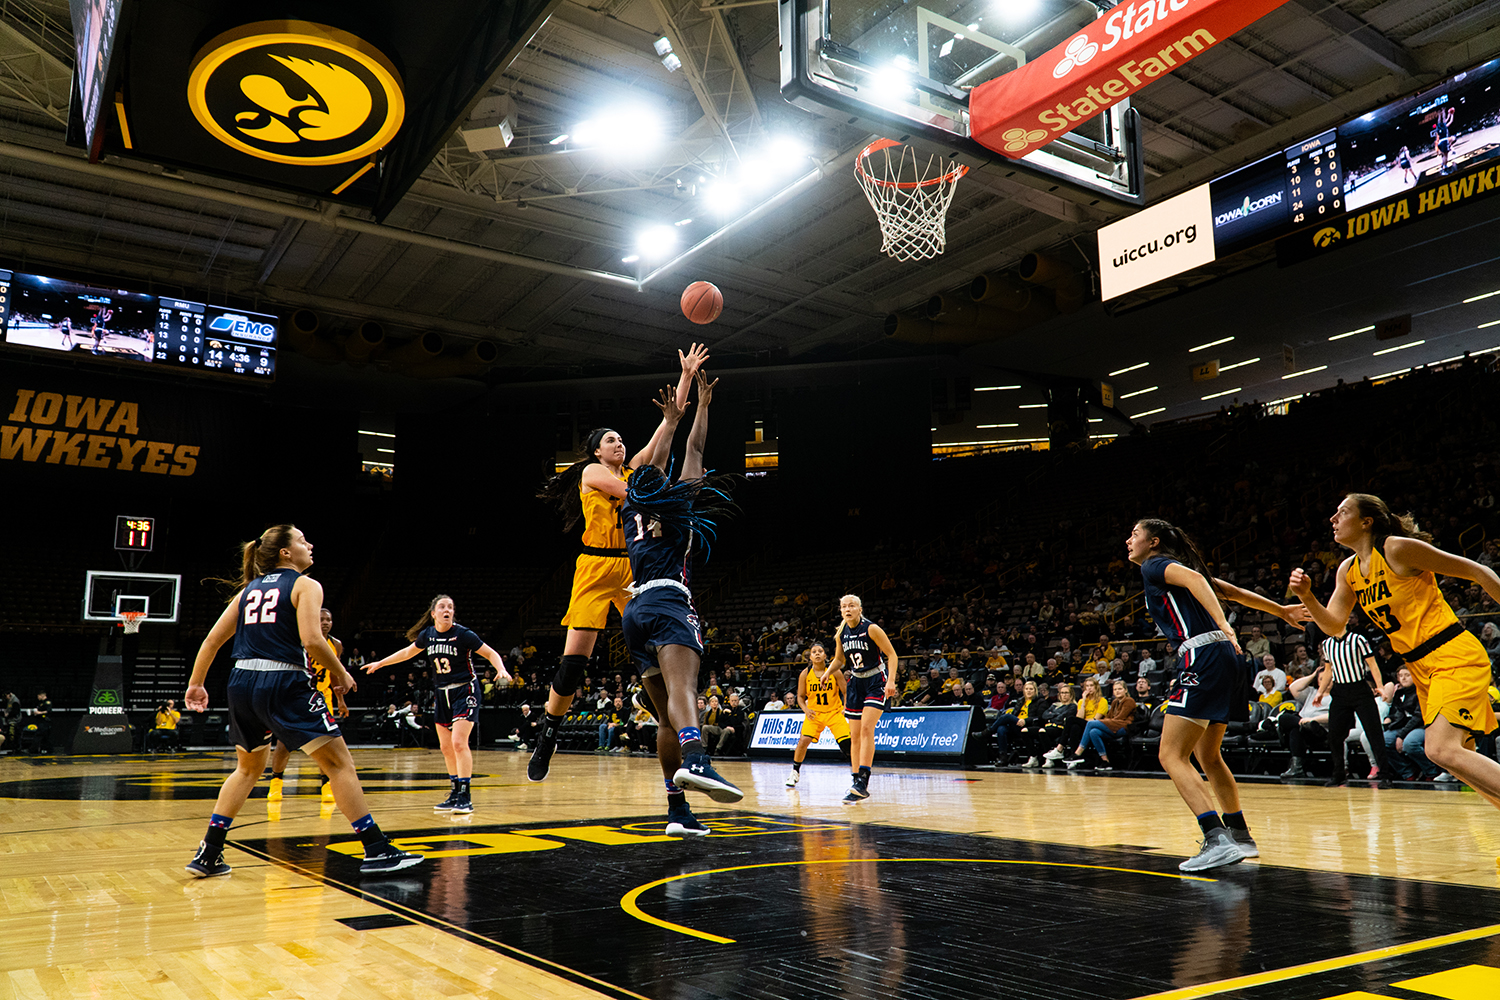 Center Megan Gustafson shoots the ball during the womans basketball game at Carver Hawkeye Arena on December 2, 2018. The Hawkeyes won against Robert Morris 92-63. (Roman Slabach/The Daily Iowan)